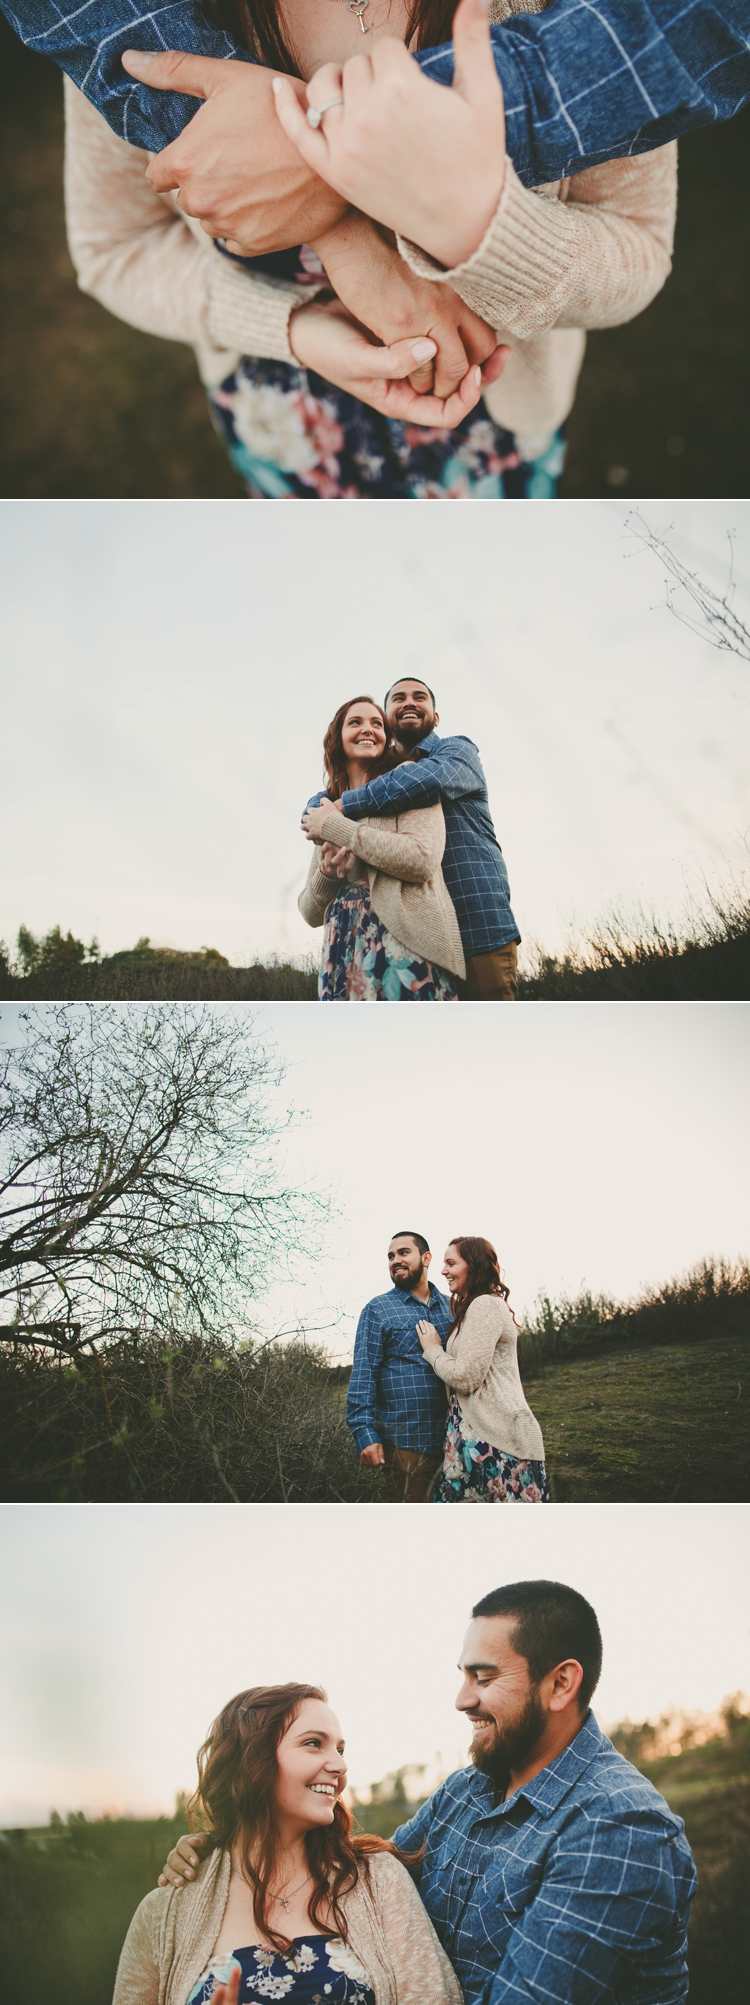 Peltzer Pumpkin Farm Engagement Photos 3